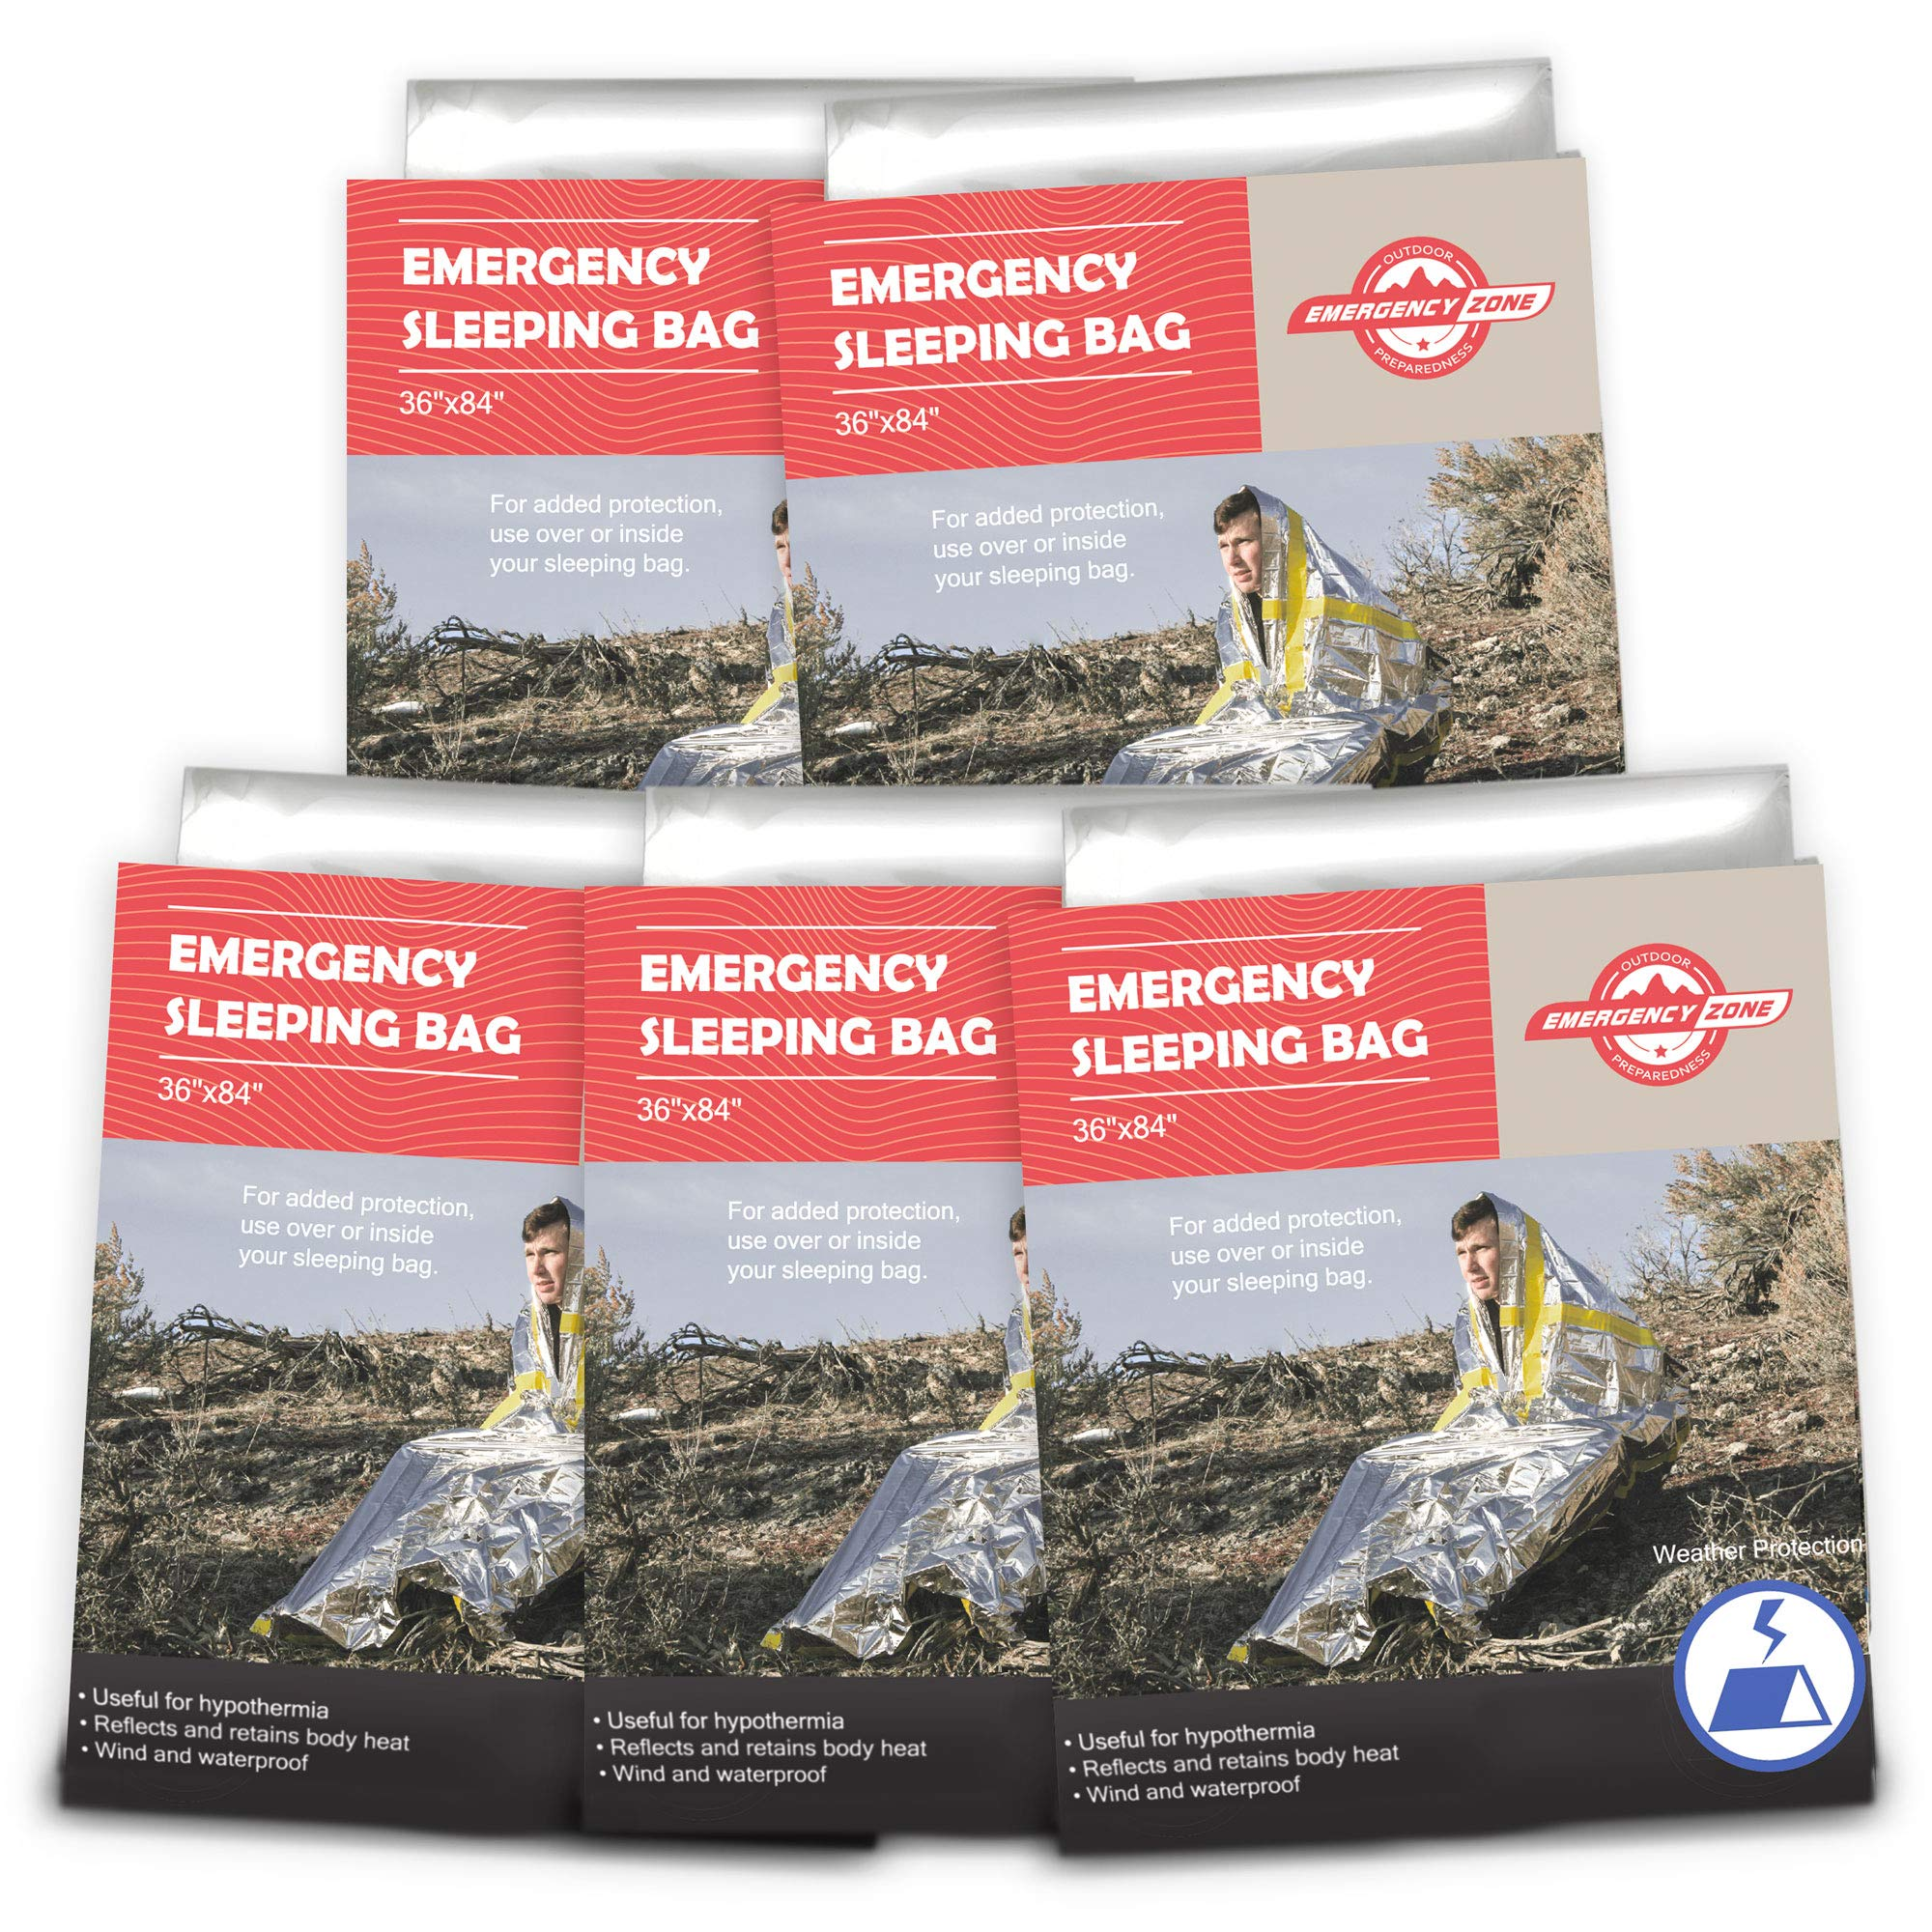 Emergency Zone Emergency Sleeping Bag, Survival Bag, 1, 5, 12, and 144 Packs Available by Emergency Zone